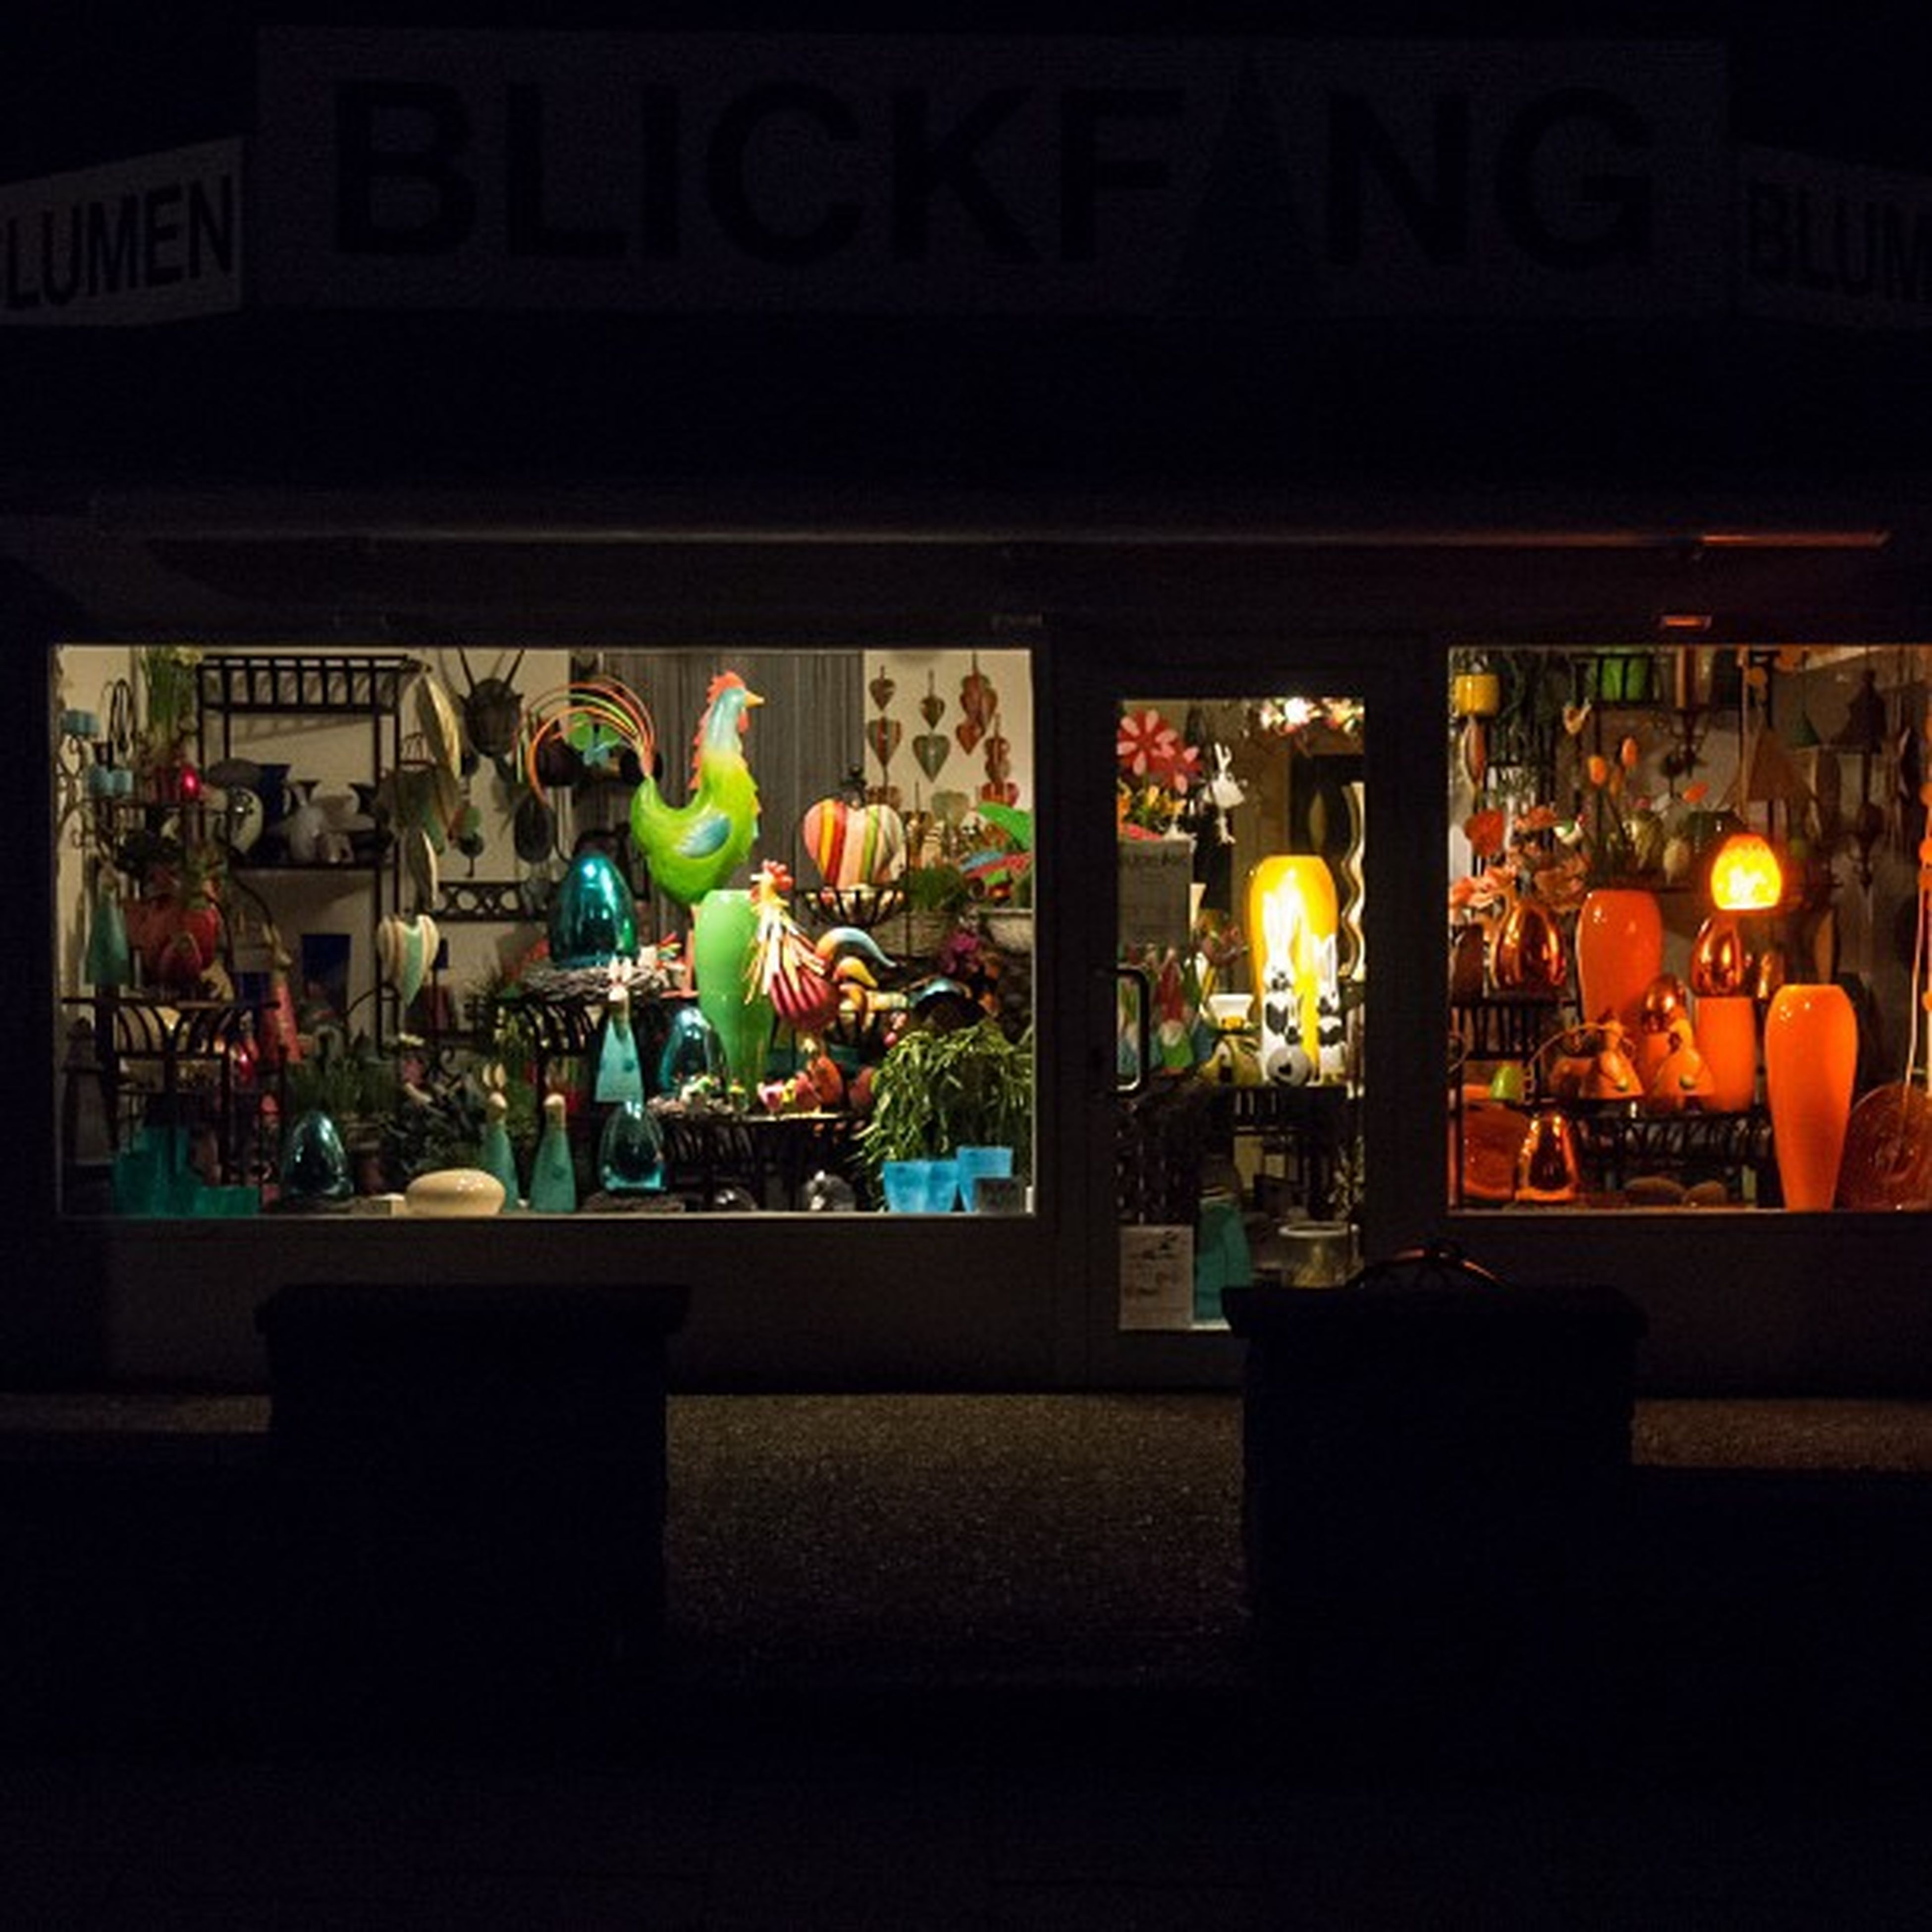 night, illuminated, store, retail, indoors, variation, men, market, choice, shop, for sale, display, city, incidental people, market stall, restaurant, lighting equipment, large group of objects, street